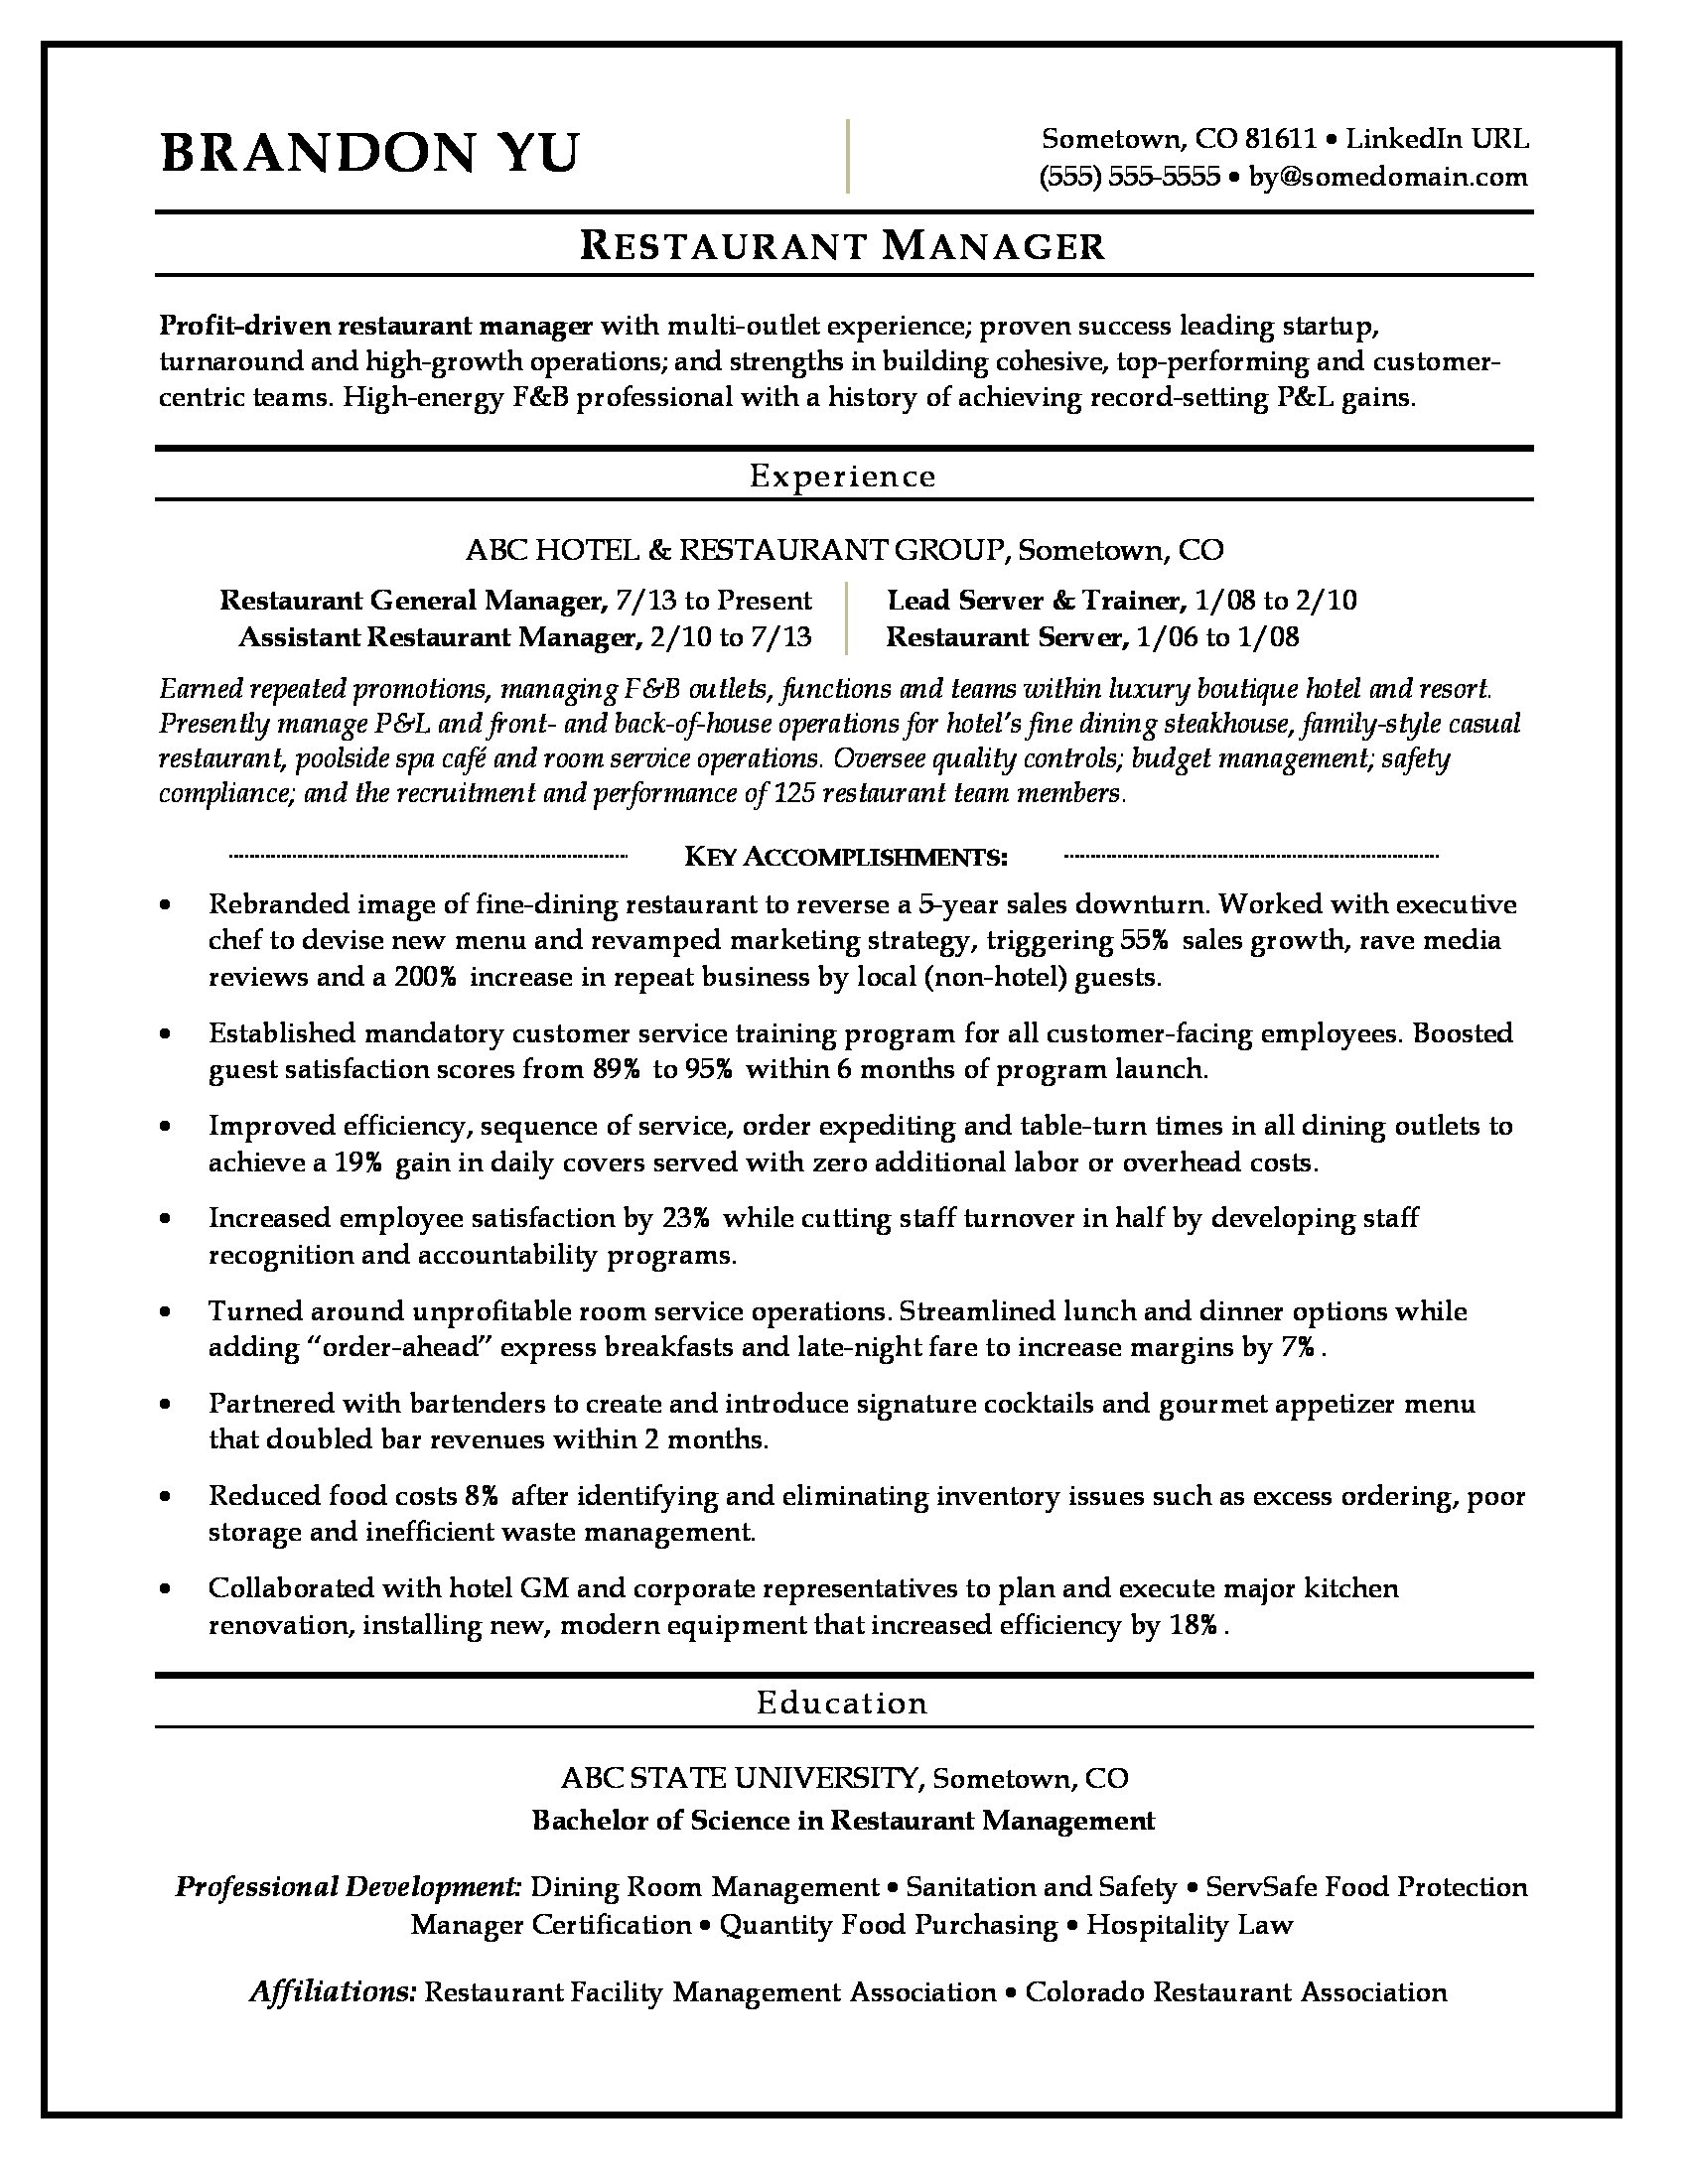 sample resume for a restaurant manager - Restaurant Management Resumes